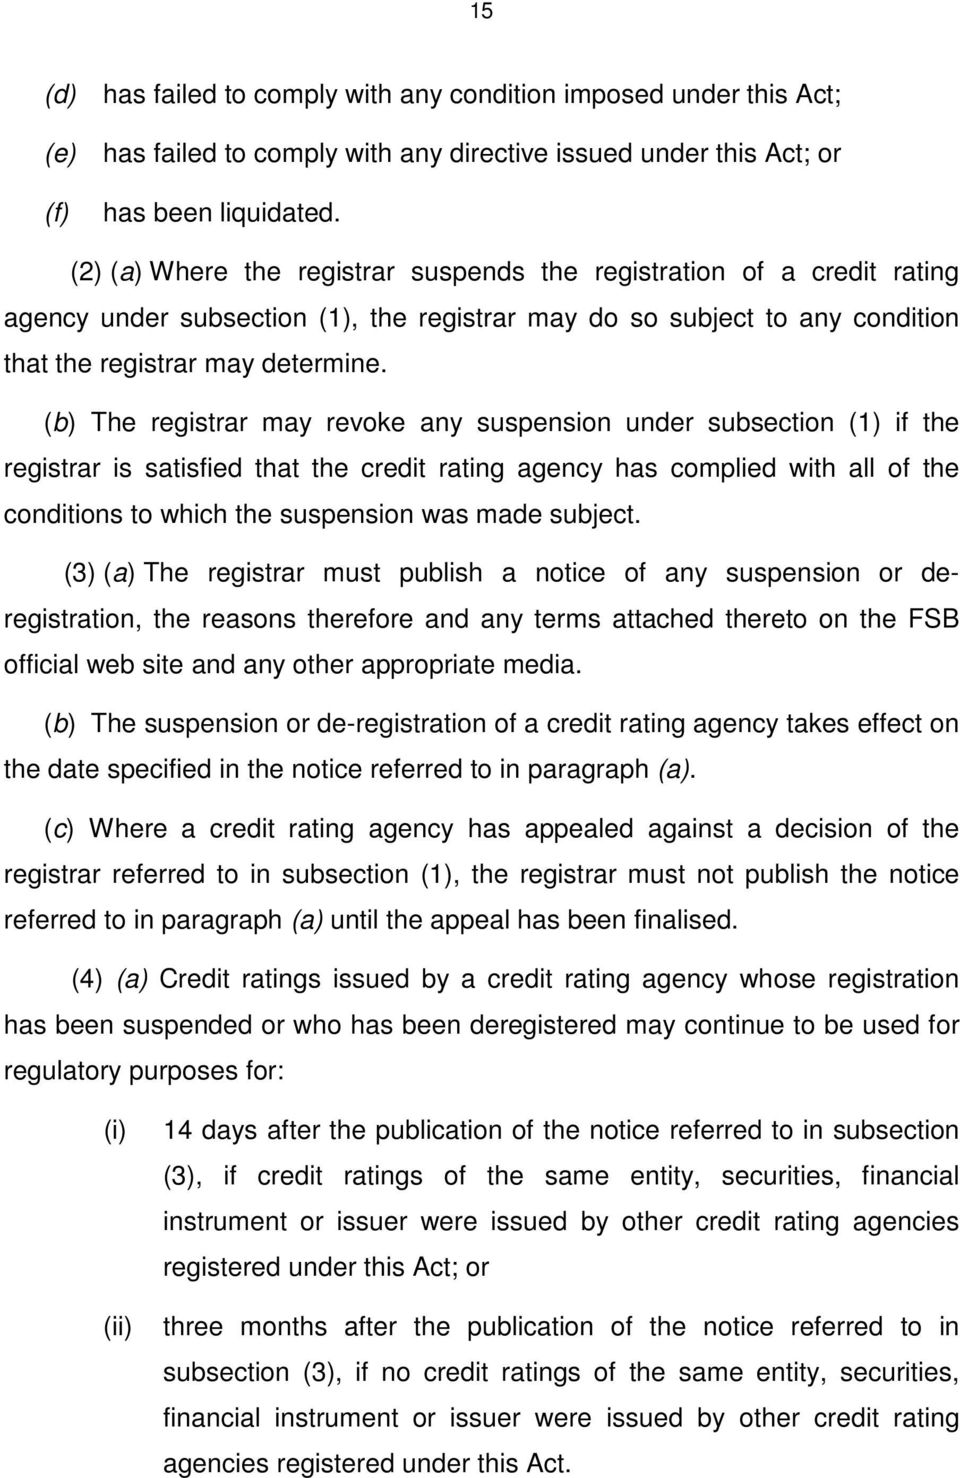 (b) The registrar may revoke any suspension under subsection (1) if the registrar is satisfied that the credit rating agency has complied with all of the conditions to which the suspension was made